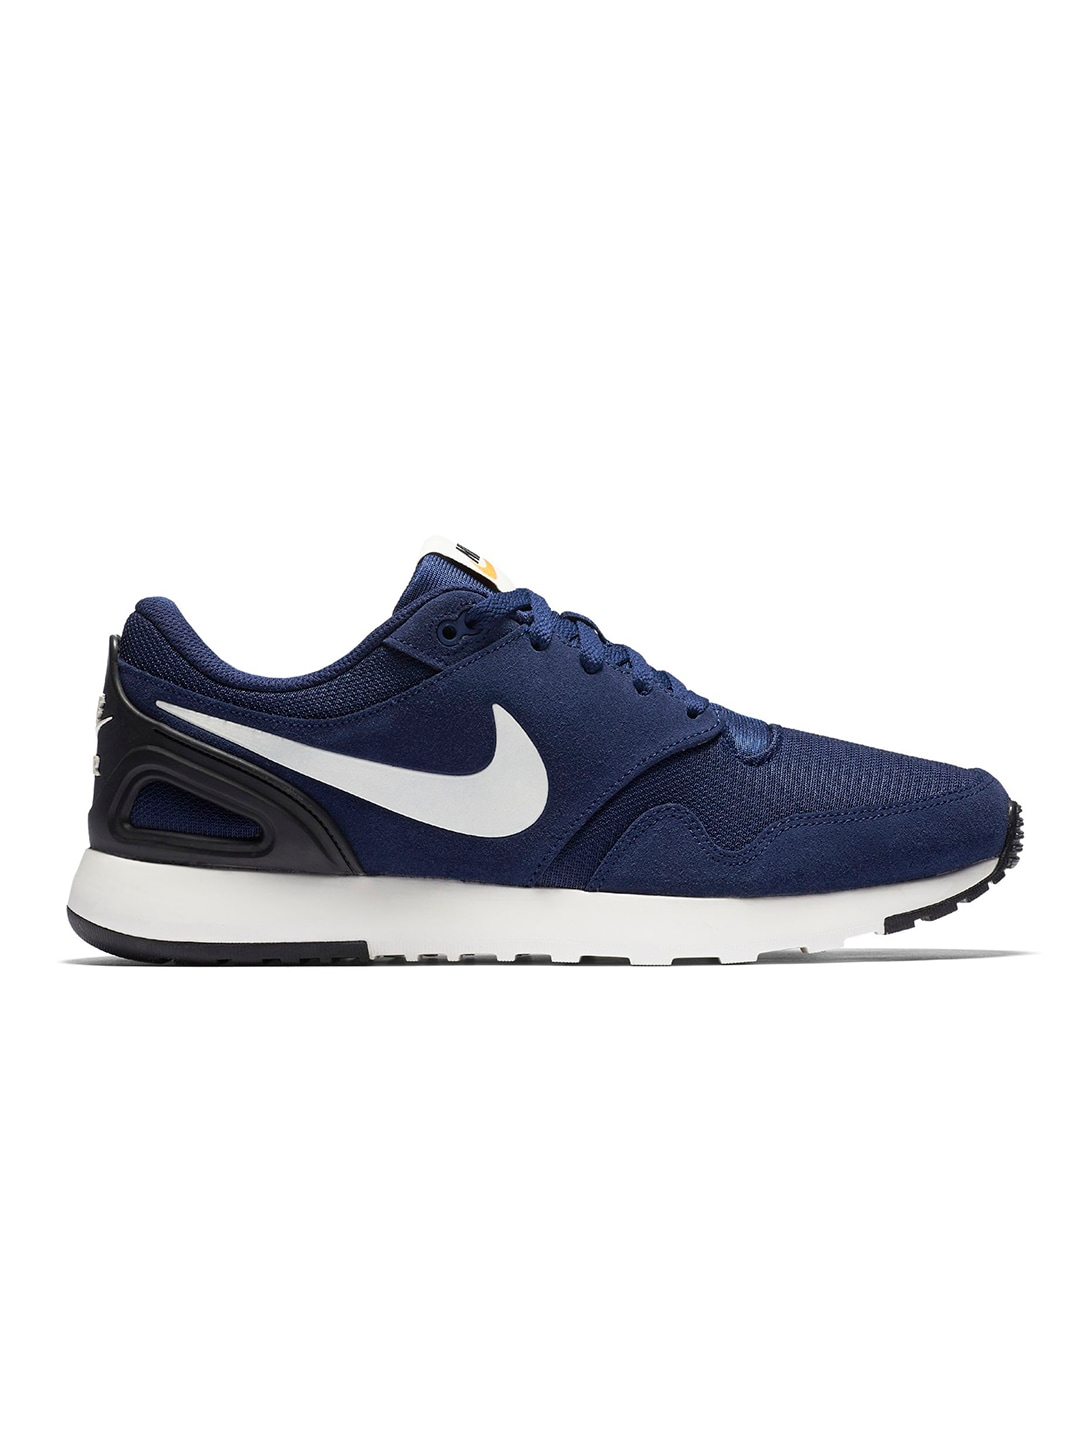 nike casual shoes for provincial archives of